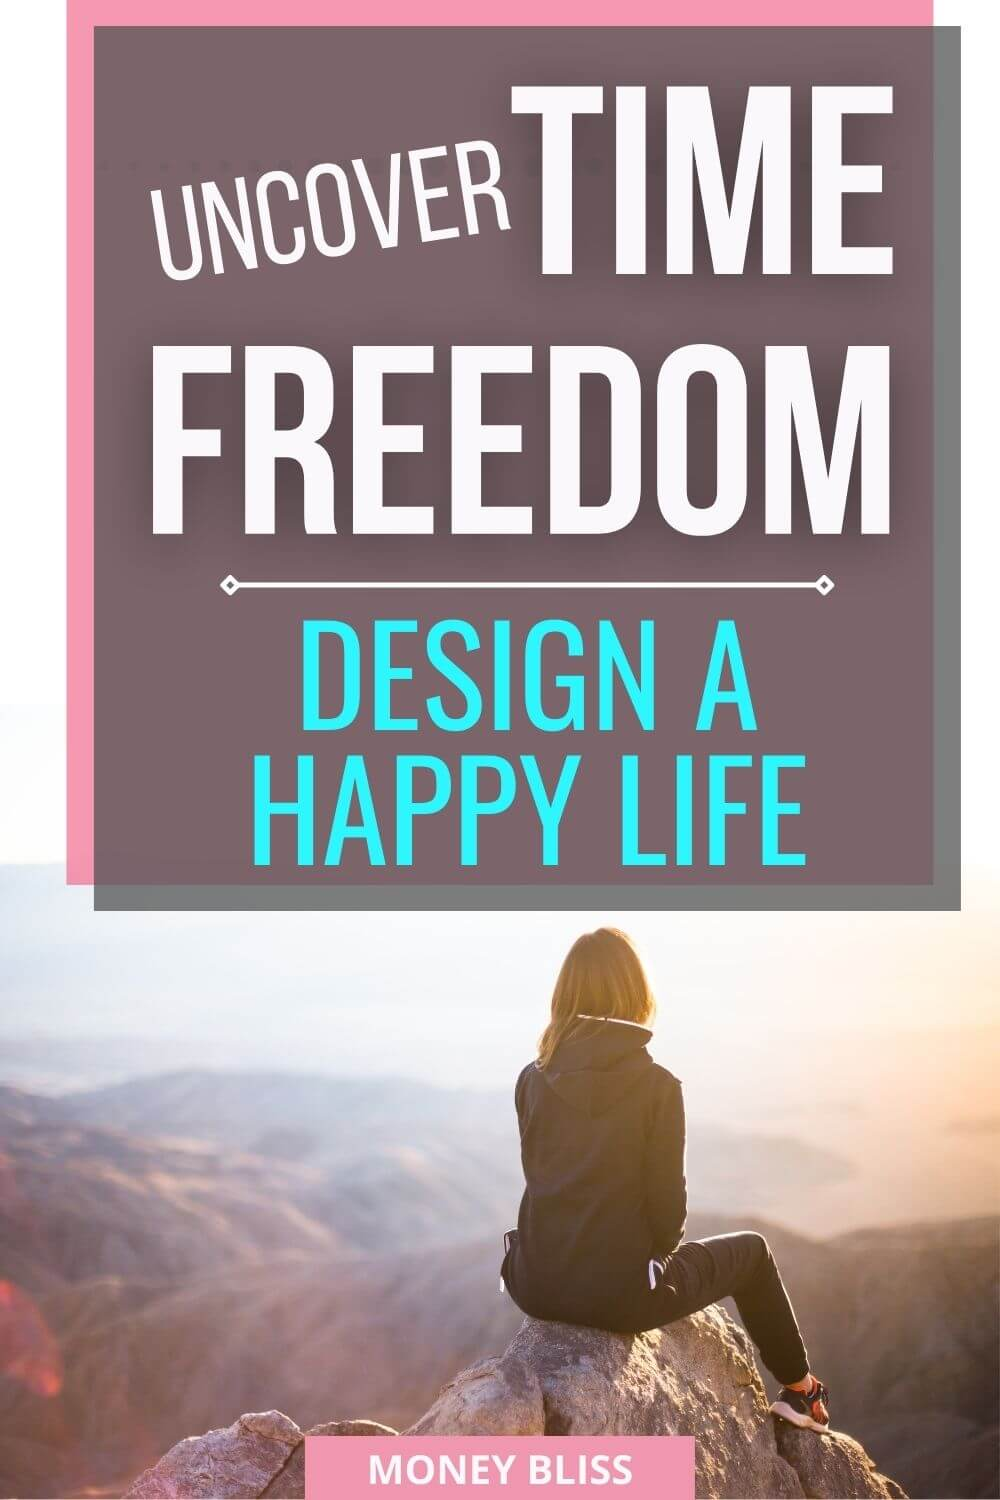 Reading this post from Money Bliss on time freedom will deeply impact your life. Focus on the activities you want and start to design the life you want to live!